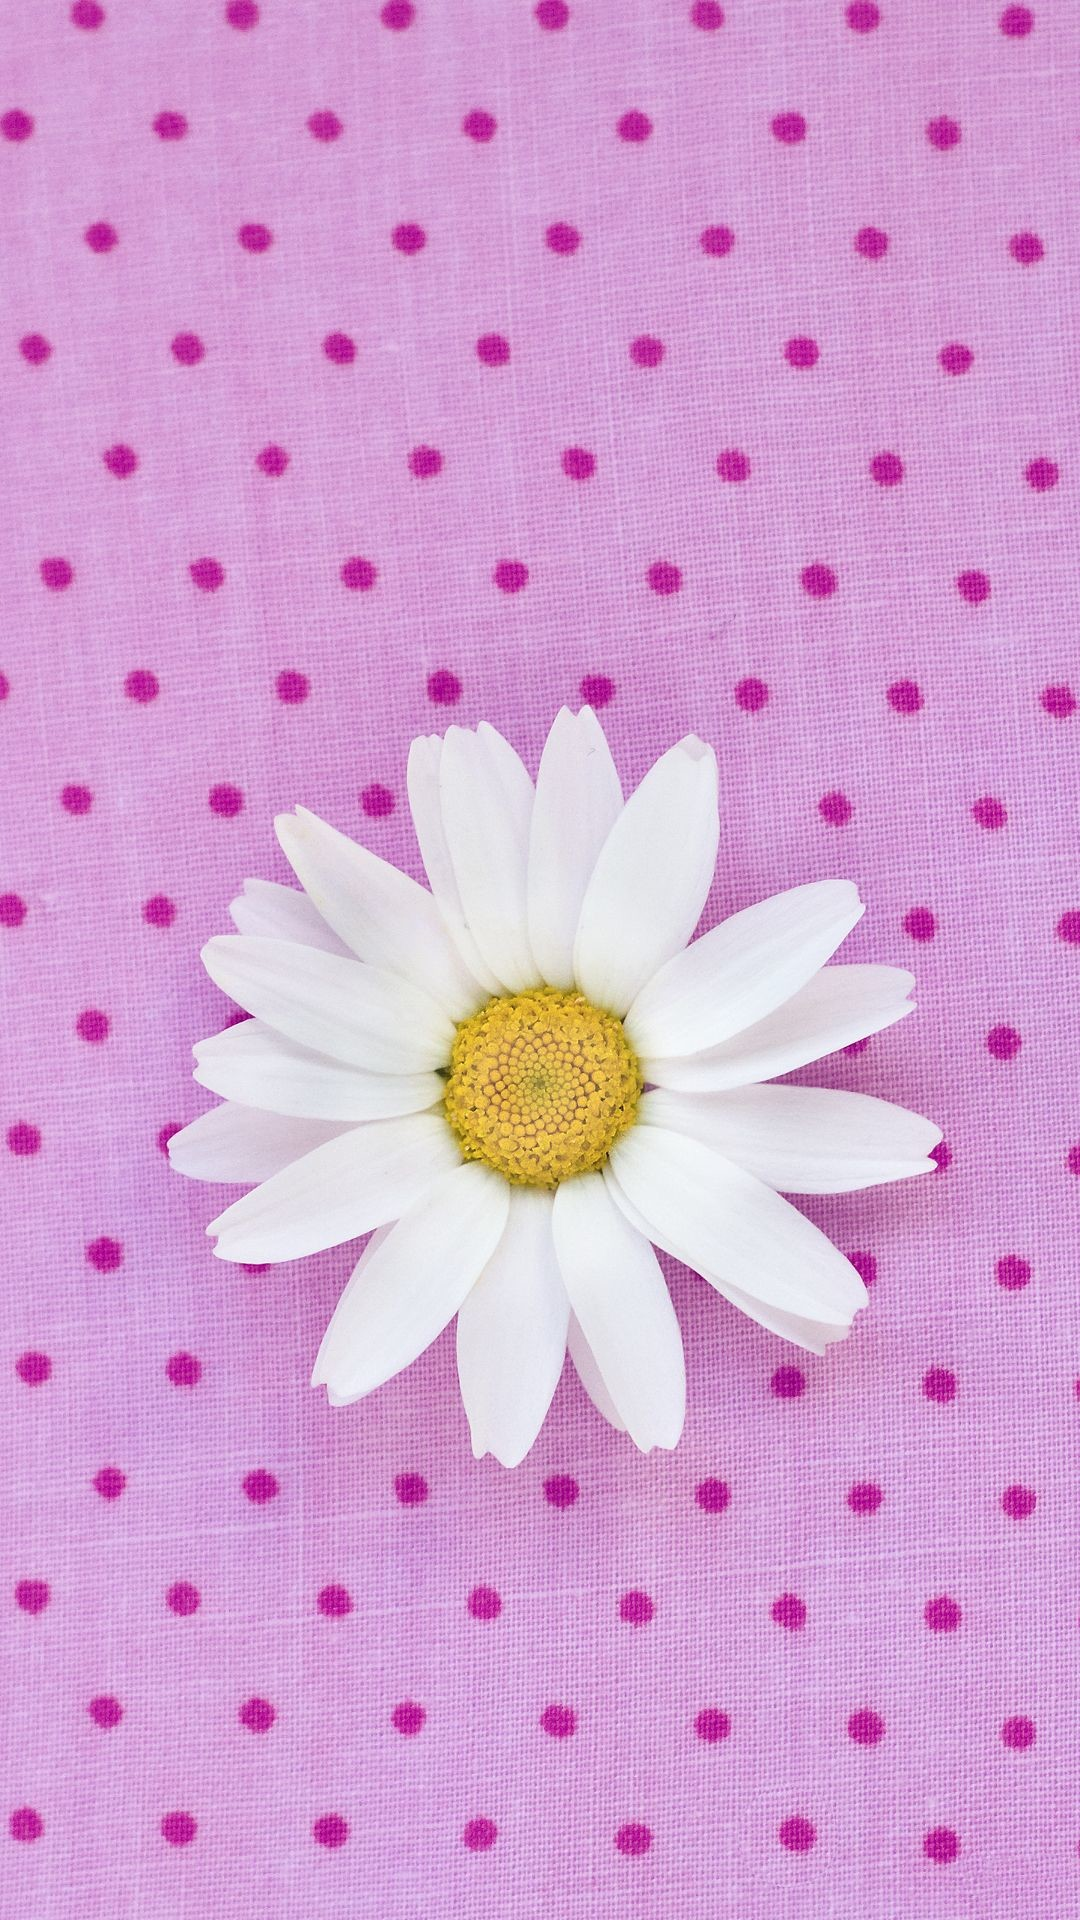 Pink Daisy Wallpaper 61 Images